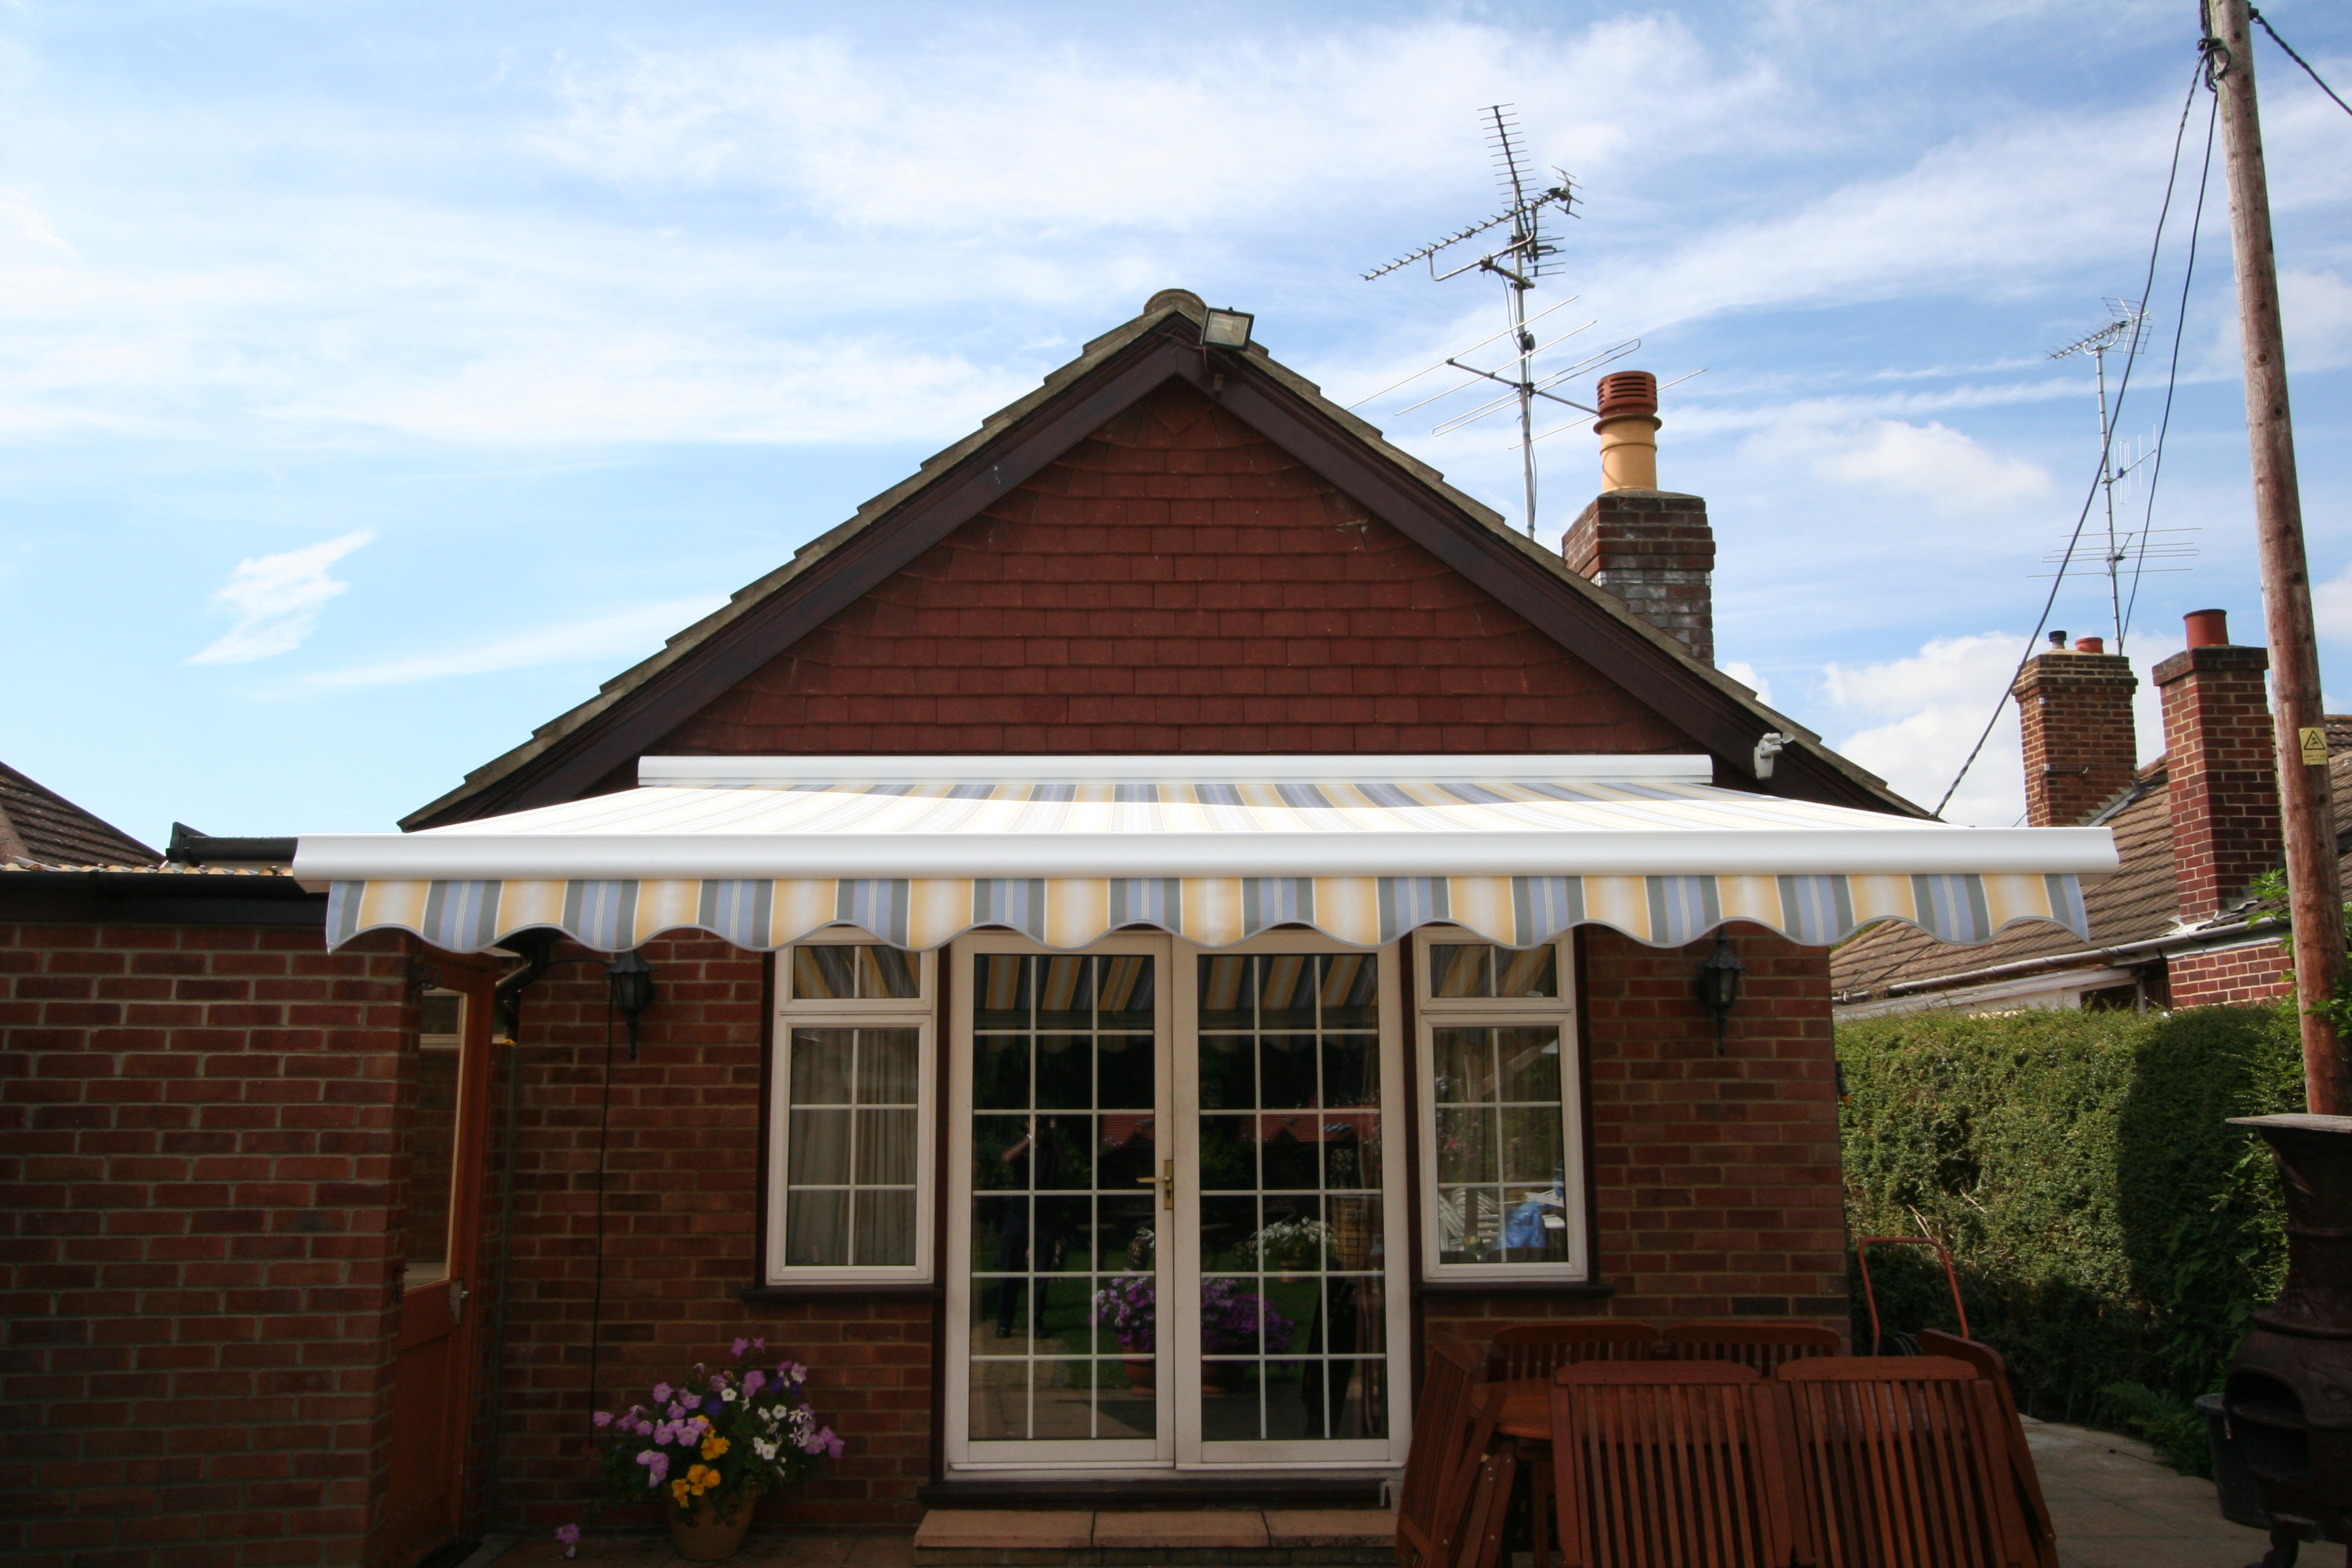 Patio Awning Installed To Tiled Face Property